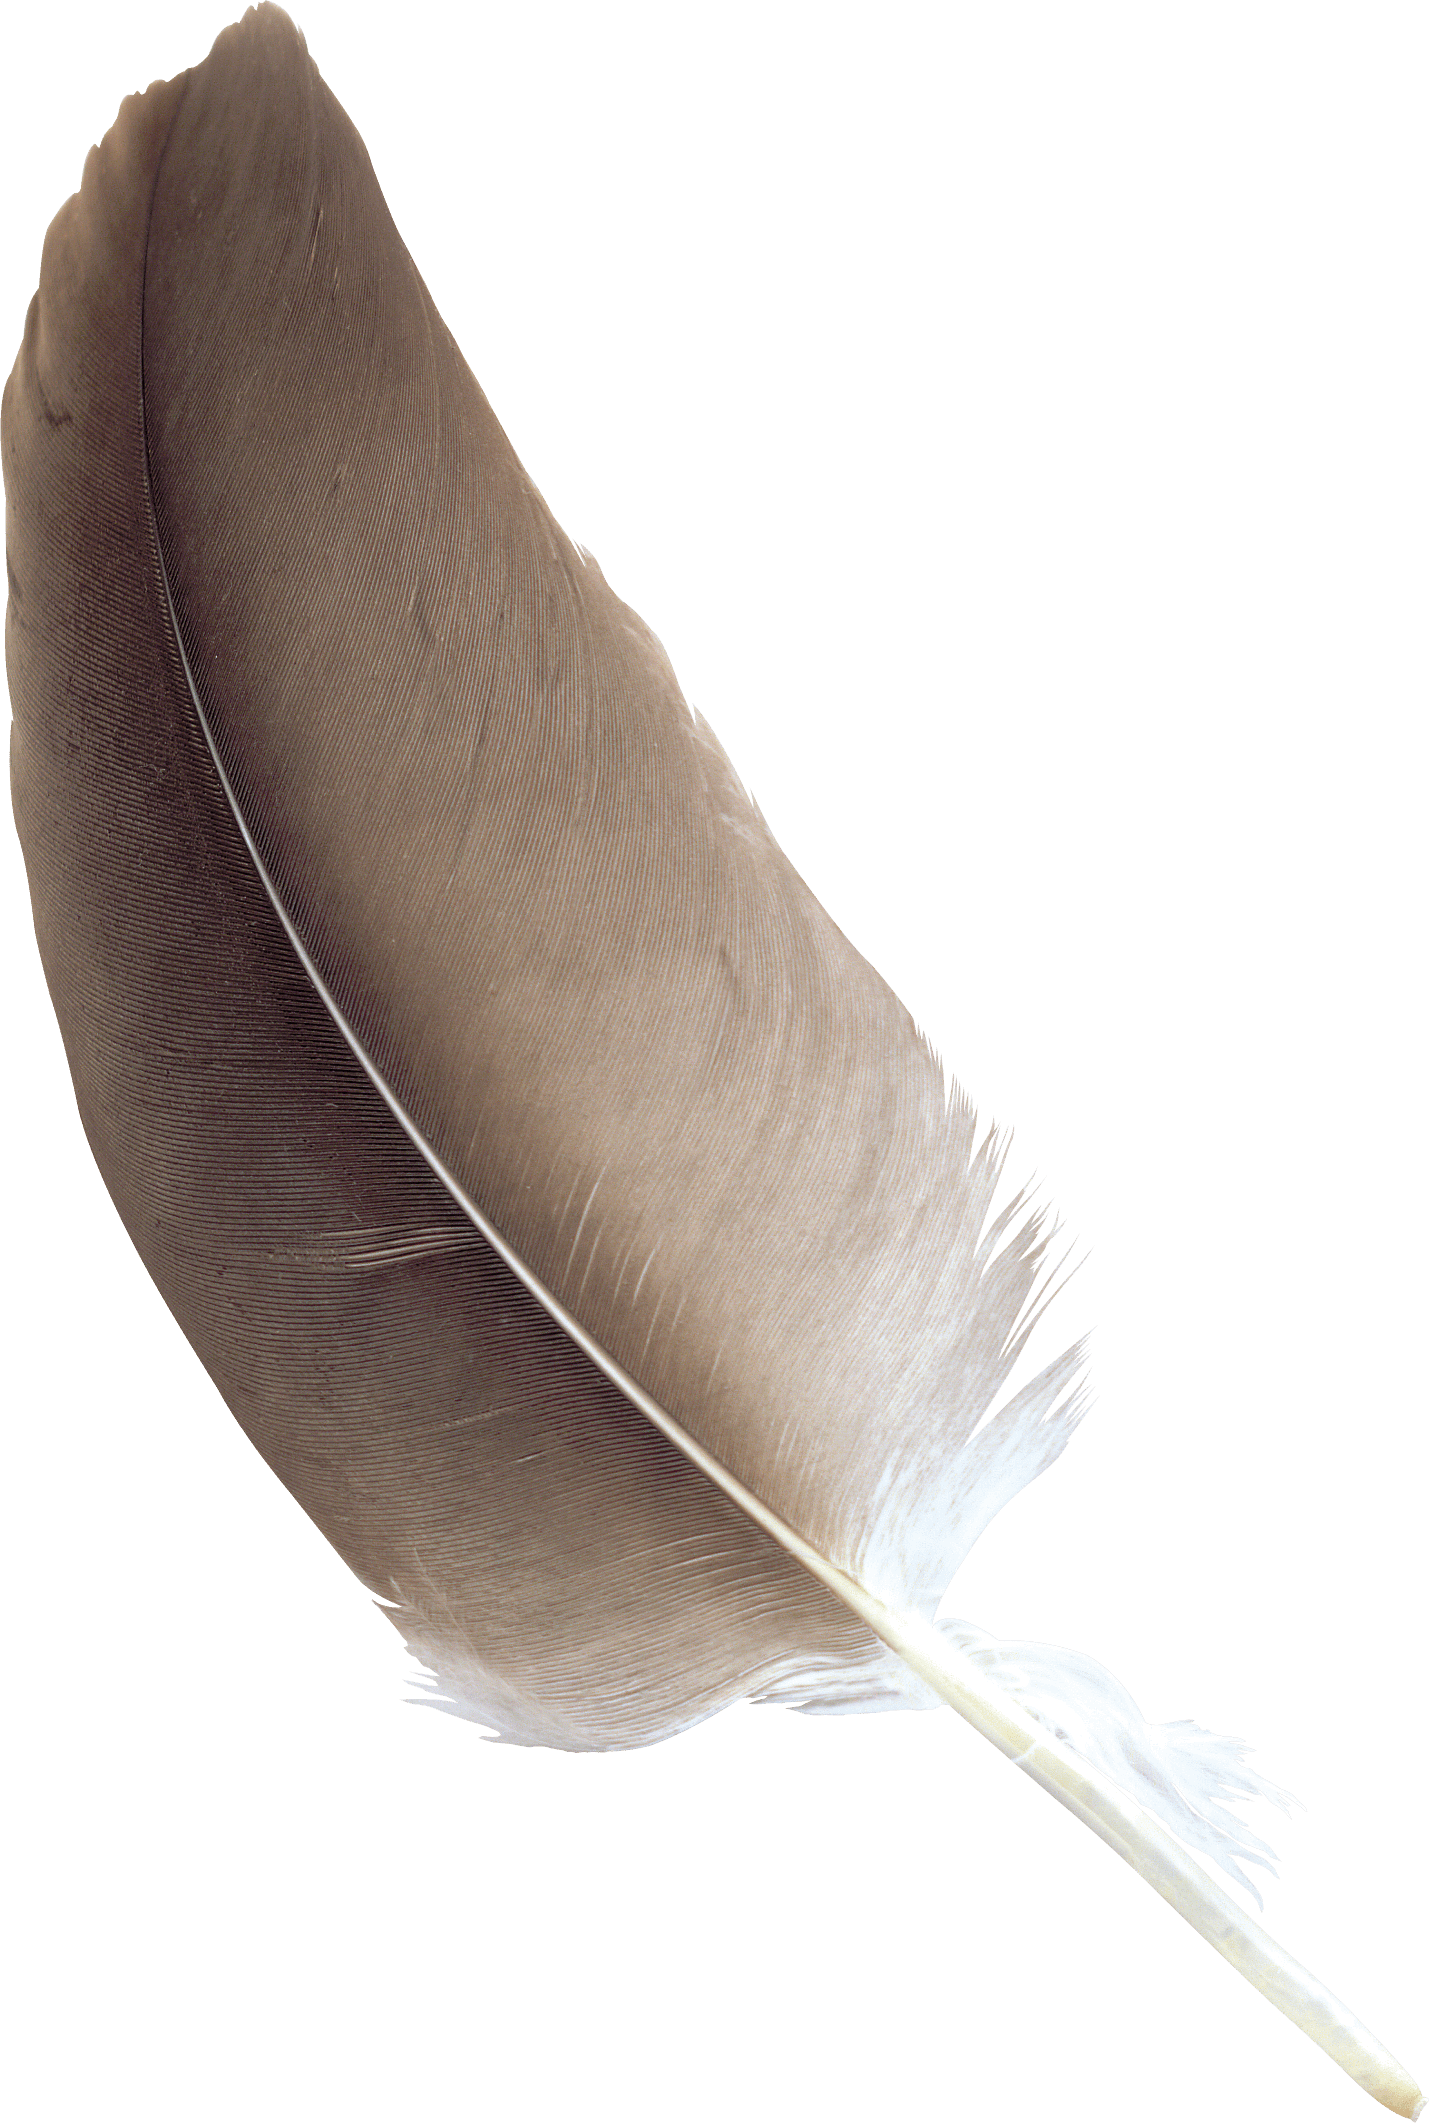 Feather clipart creative. Brown transparent png stickpng